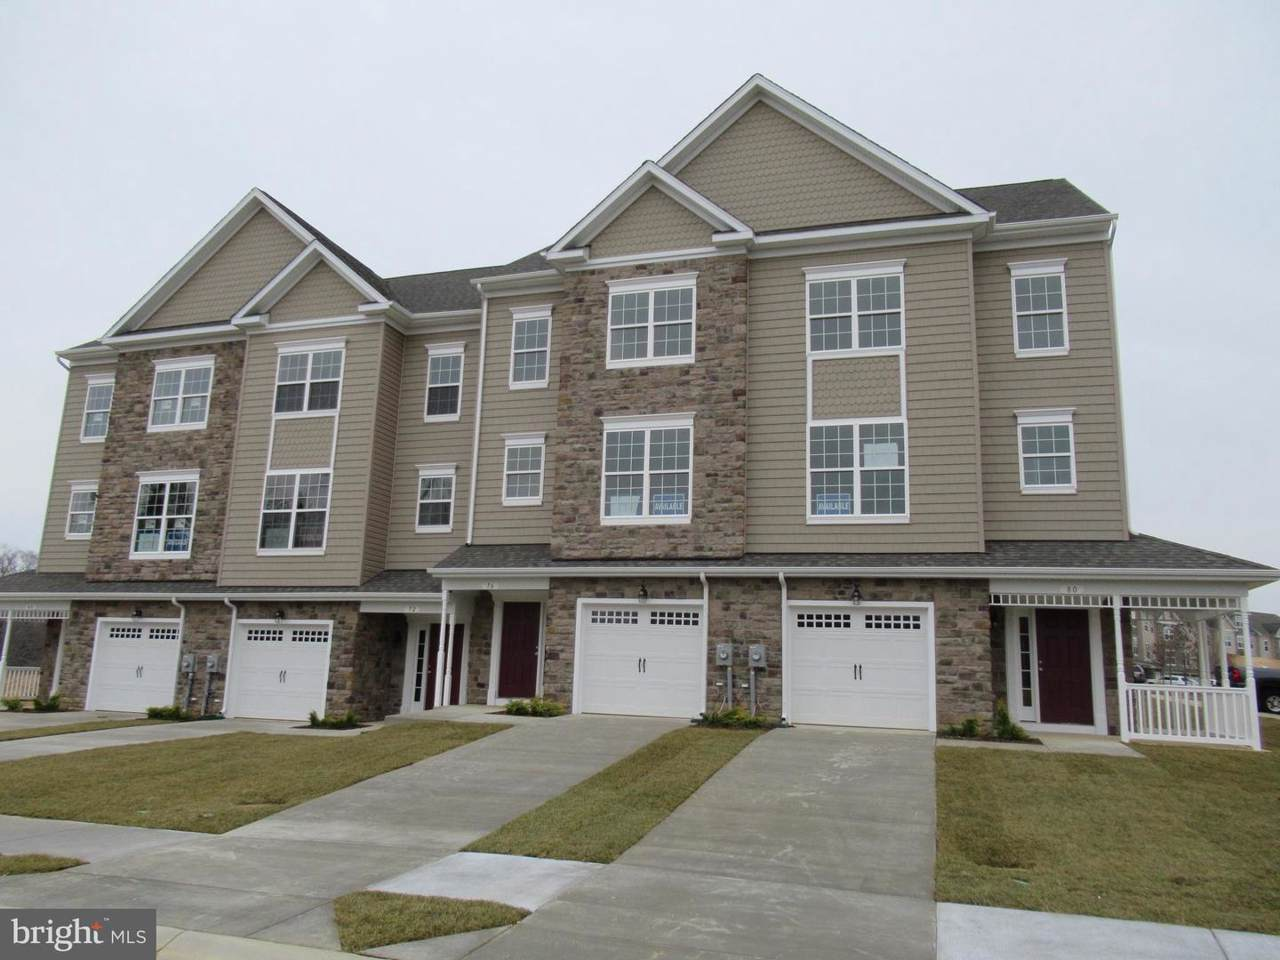 71 Clydesdale Lane - Photo 1